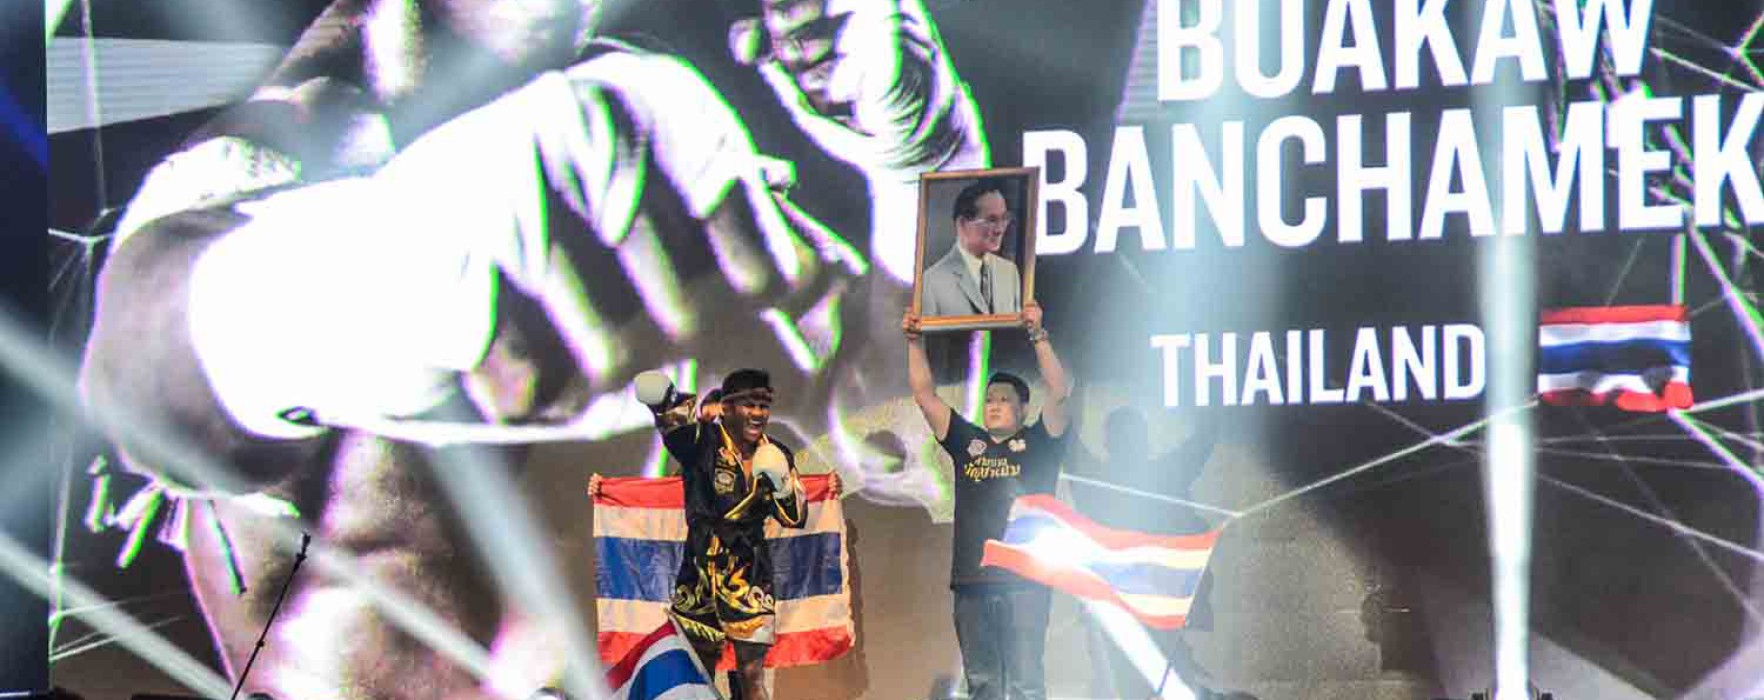 Buakaw abandons K1 ring and Kehl is the new K-1 Max Champion.